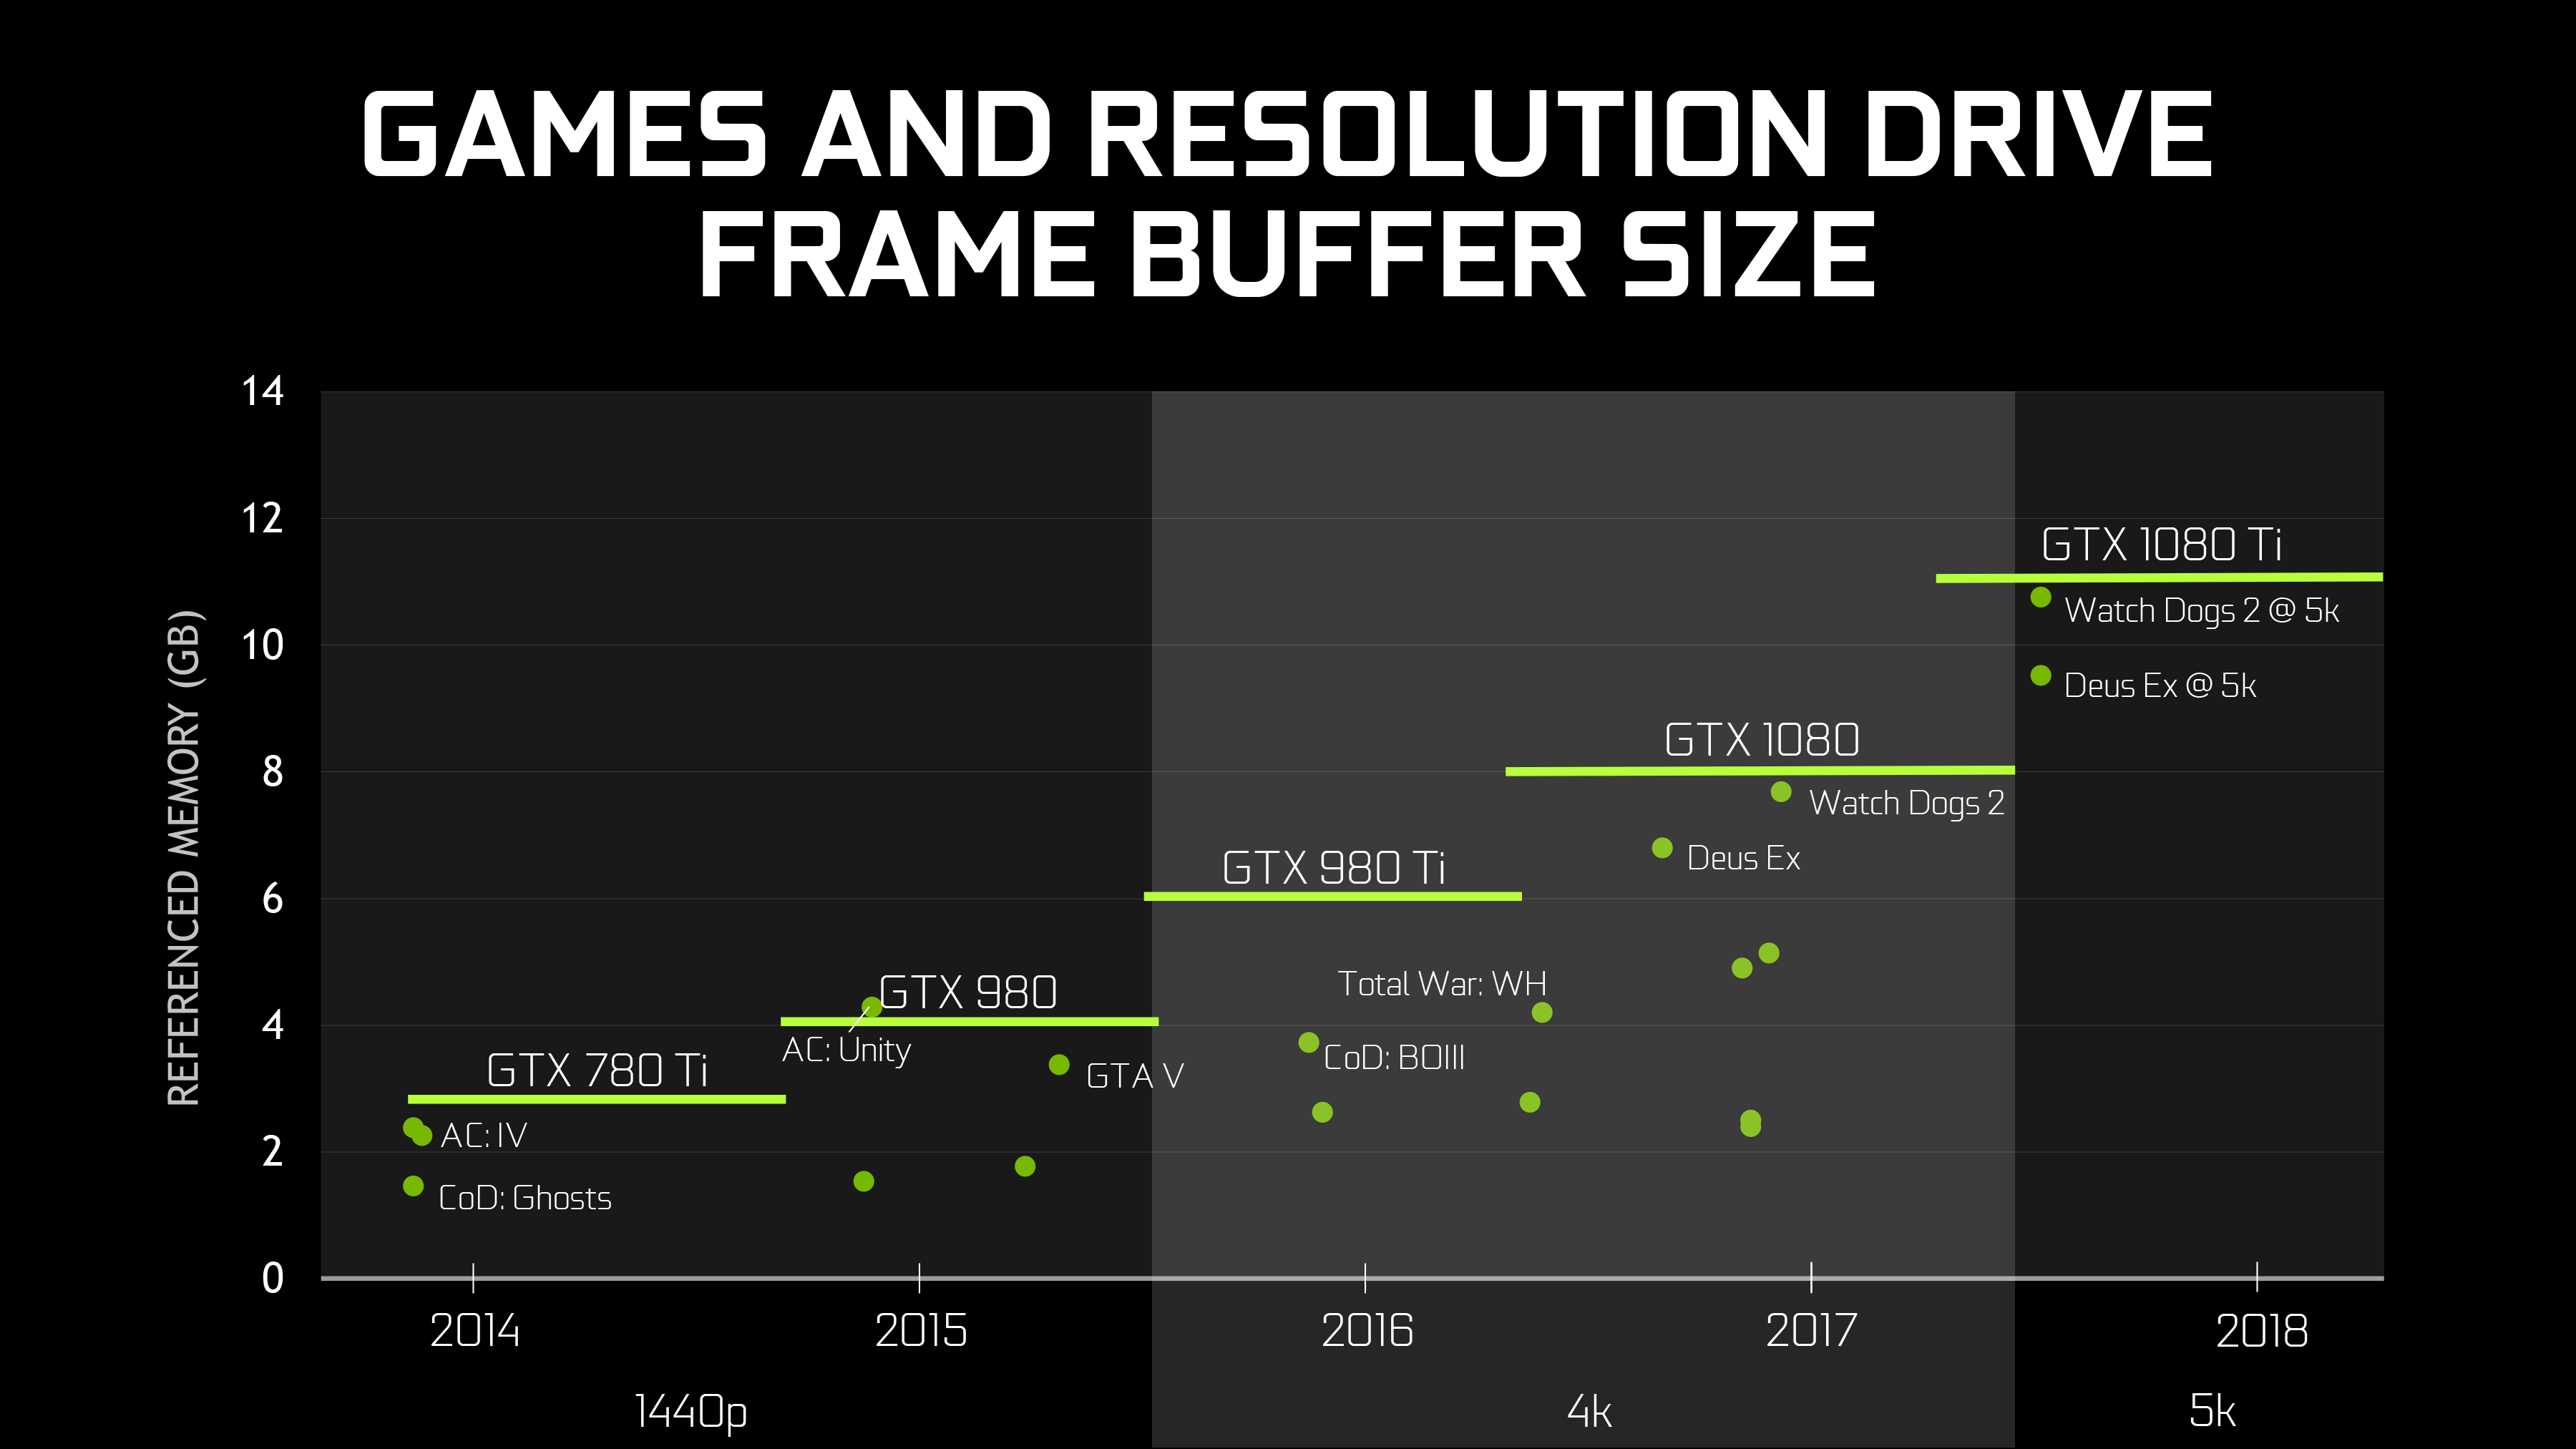 Second Generation GDDR5X: More Memory Bandwidth - The NVIDIA GeForce